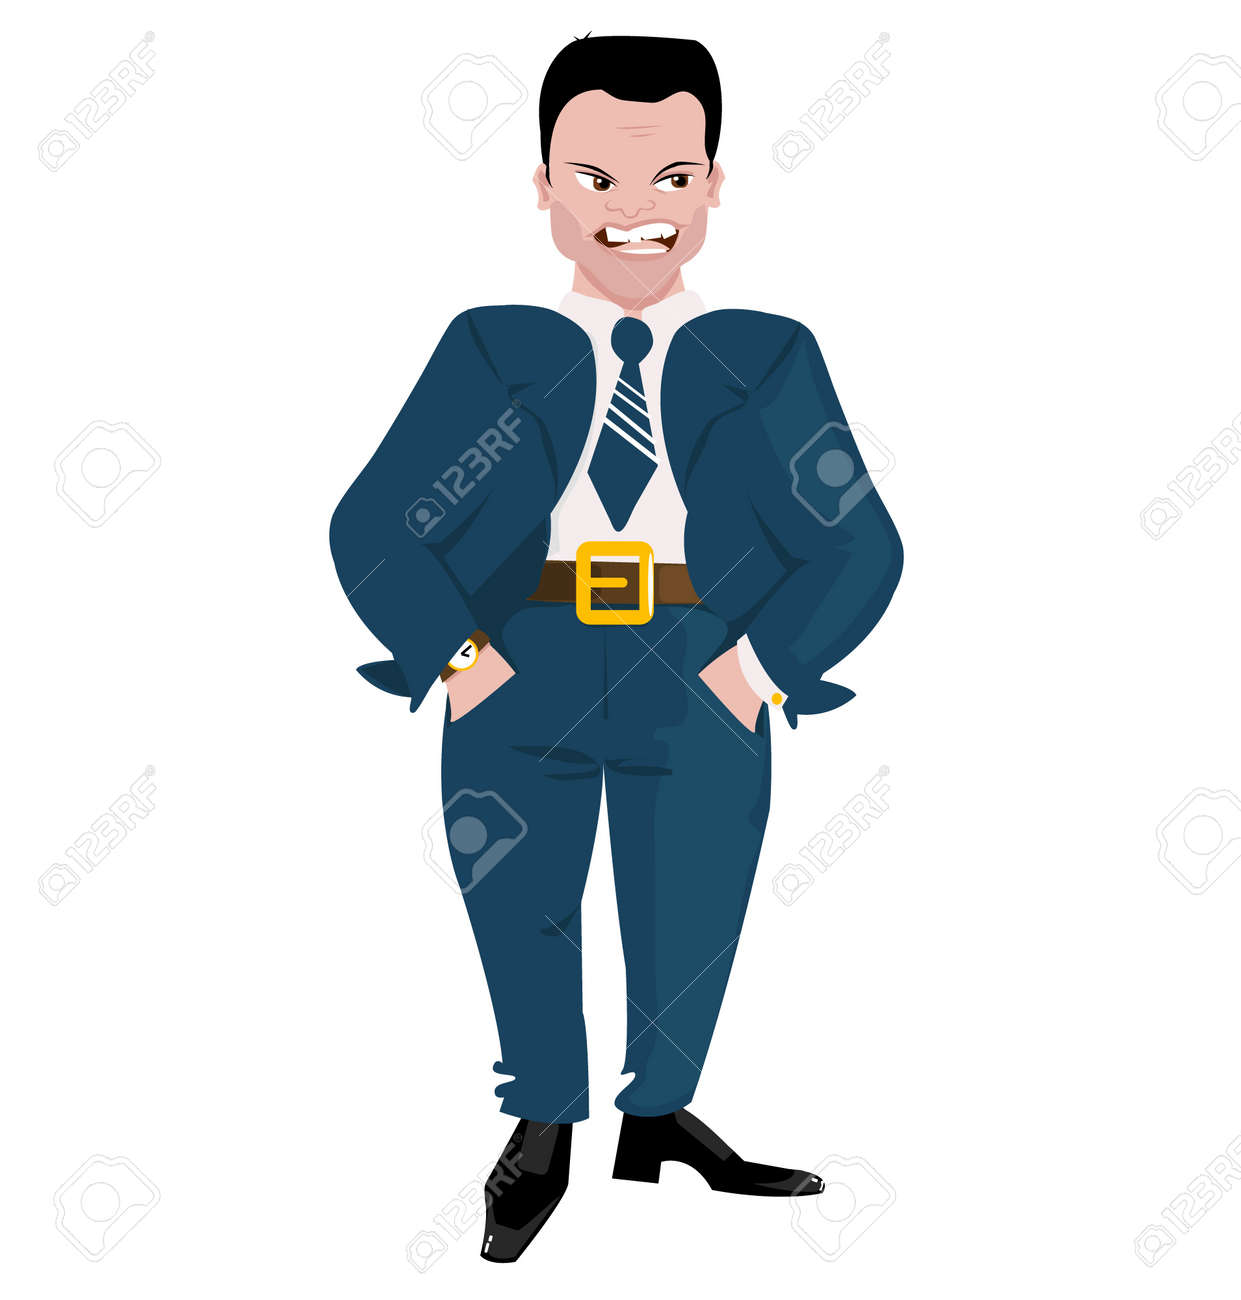 Evil Boss Stock Vector - 12954701